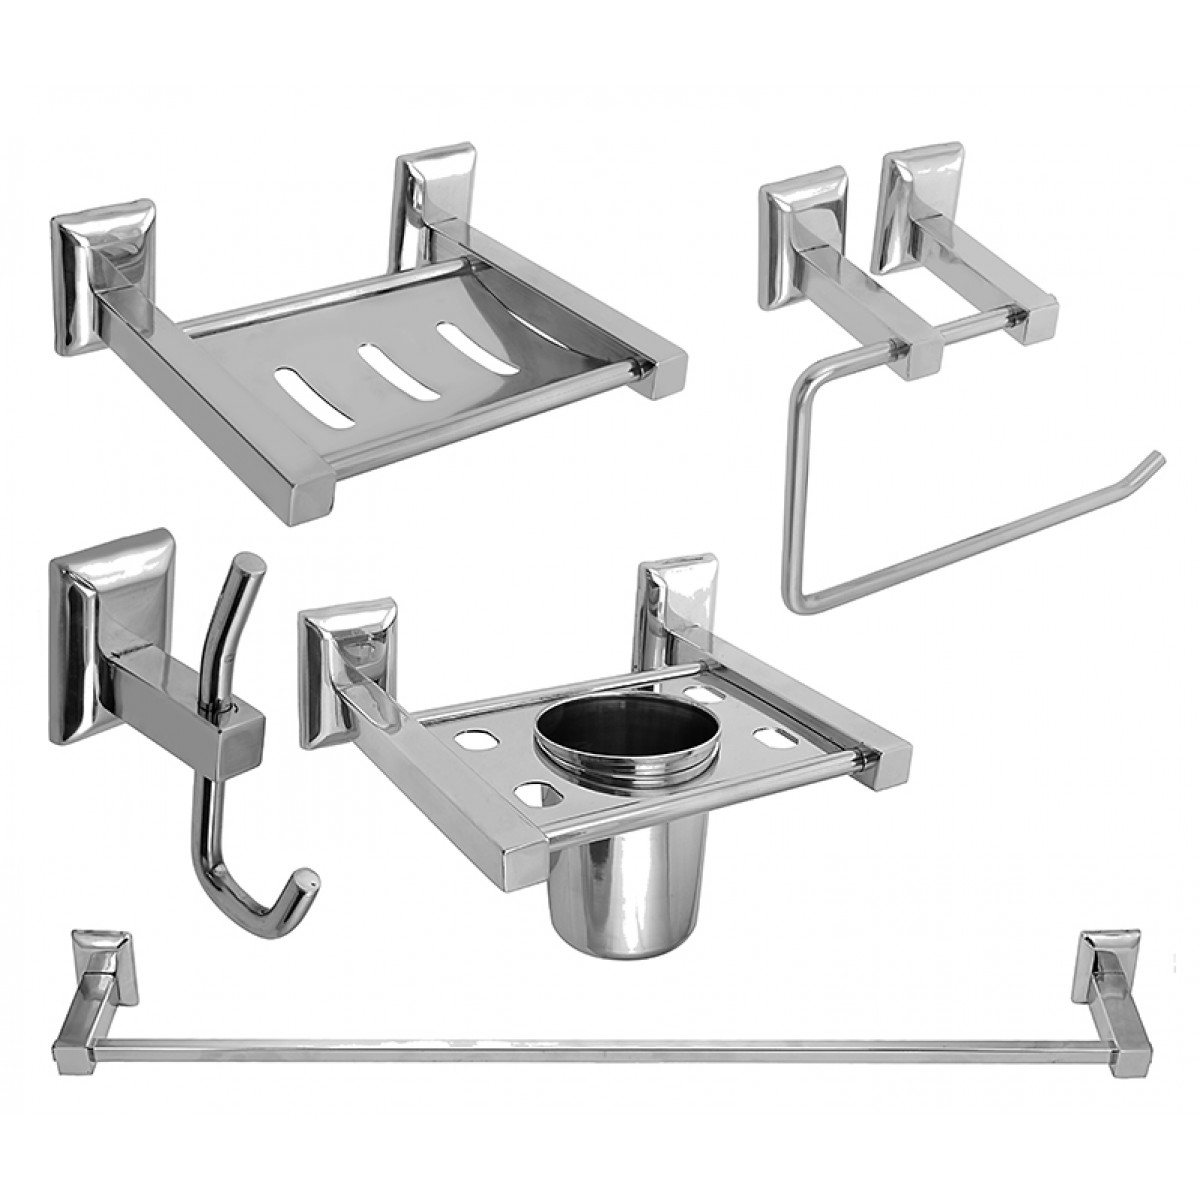 Buy Online Bath Set Bathroom Accessories Set Steel Aquaria. Bathroom Accessories Set   Interior Design